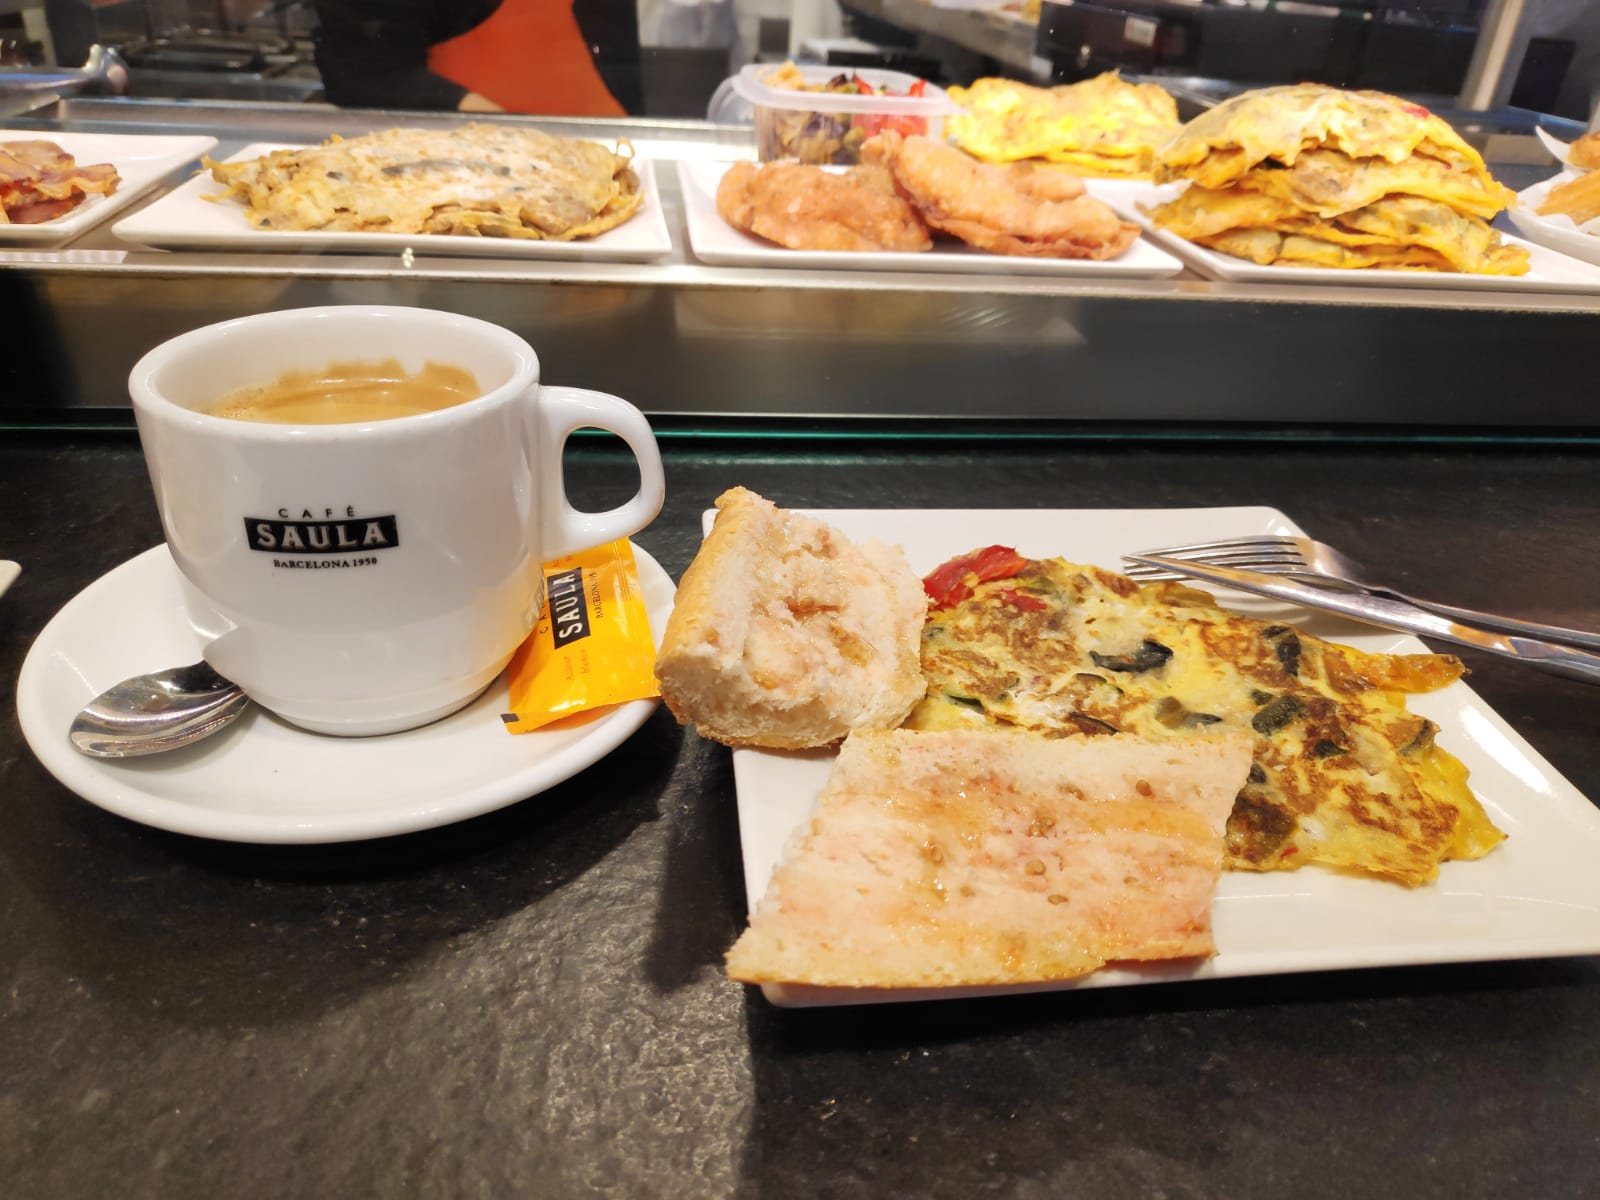 Coffee in Spain is a must to accompany a delicious breakfast!